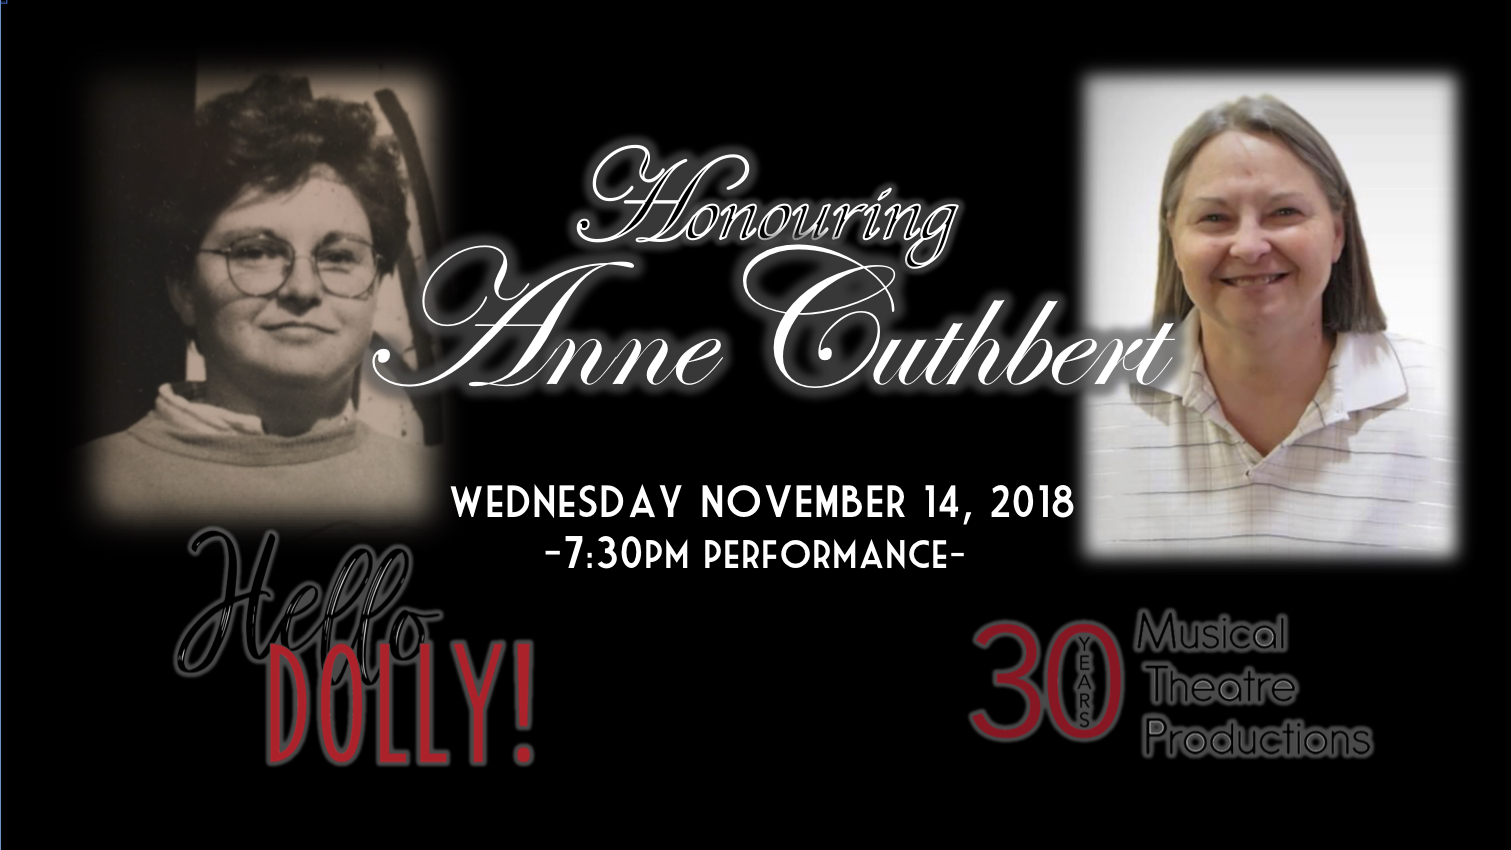 We are thrilled to announce that Anne Cuthbert will be the next recipient of MTP's annual Lifetime Membership honour.  Each year, the MTP board selects one or two individuals whose support of MTP and contributions to the London community at large deserve recognition. Previous recipients of the award include Art Fidler, Liz Van Doorne, Stephen and Deborah Mitchell, Chris Wood, and Kevin Bice.  Anne Cuthbert is a driven theatre artist, and a long-time member of the Musical Theatre Productions family. Anne has been a part of London Musical Theatre (now Musical Theatre Productions) from the beginning, setting up lights for our inaugural production of Evita in 1988. Over the years, Anne has served with numerous MTP productions as a stage manager for such shows as The Music Man (1990), South Pacific (1991), Little Shop of Horrors (2008), Nunsense (2009), Bye Bye Birdie (2011) and Songs for a New World (2014). Anne also worked as backstage, technical and lighting crew for numerous productions including Broadway to the Max (1992), Anything Goes (2007) and The Drowsy Chaperone (2012). We even managed to get Anne onstage as a performer in our 1994 Production of The Pajama Game. Whether it is sitting behind a followspot, or in the booth or at the stage management table in rehearsal, Anne is a staple of the London theatre community having worked with a wide range of local companies including London Community Players, Original Kids Theatre Company, Port Stanley Festival Theatre, Fountainhead Theatre, Theatre Soup and even currently with Calithumpian Theatre Company as stage manager for their production of Hir directed by our next Lifetime Membership Award recipient and founder of London Musical Theatre, John Gerry.   Join us on Wednesday November 14 on the McManus Stage – The Grand Theatre, for a special honouring of Anne Cuthbert, at the evening performance of  Hello Dolly!  After the show, join us for a reception in her honour as well as that of the talented cast and crew of t